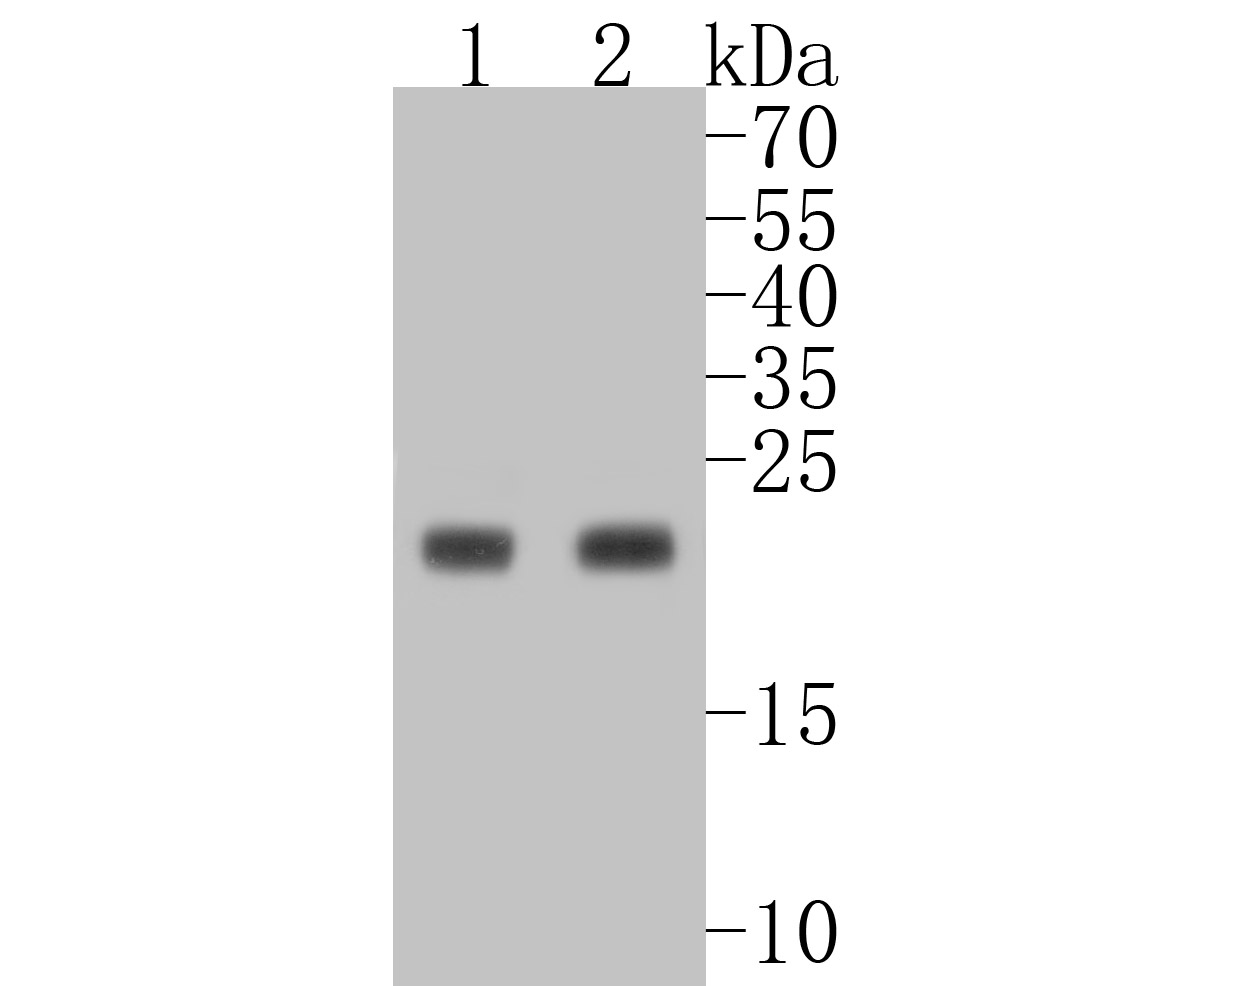 Western blot analysis of MUC1 on different lysates. Proteins were transferred to a PVDF membrane and blocked with 5% BSA in PBS for 1 hour at room temperature. The primary antibody (ET1611-14, 1/500) was used in 5% BSA at room temperature for 2 hours. Goat Anti-Rabbit IgG - HRP Secondary Antibody (HA1001) at 1:5,000 dilution was used for 1 hour at room temperature.<br />  Positive control: <br />  Lane 1: Hela cell lysate<br />  Lane 2: MCF-7 cell lysate